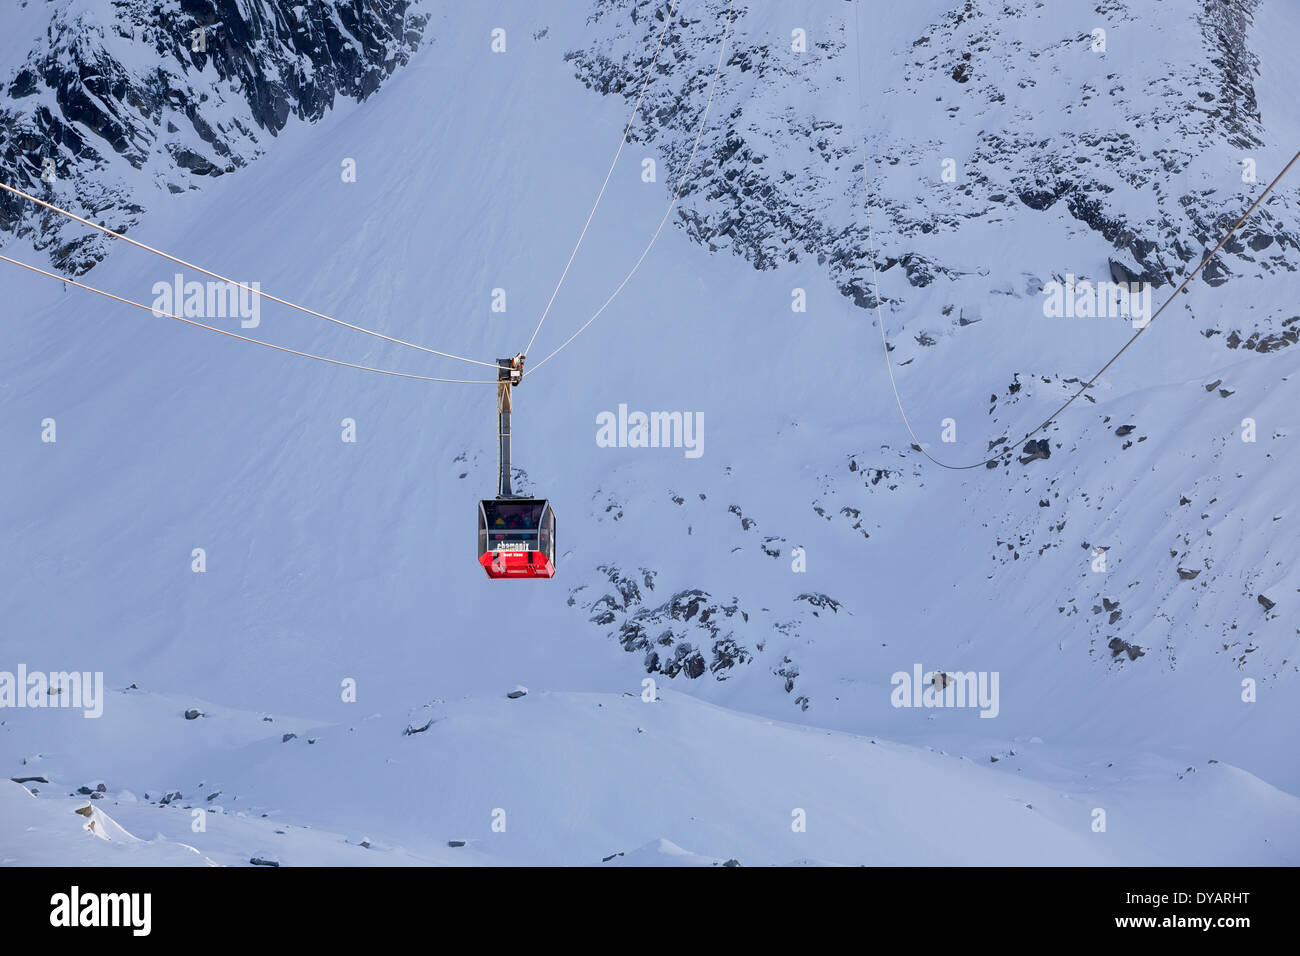 The Aiguille Du Midi gondola, carries passengers to the top of Aiguille Du Midi mountain above Chamonix Mont-Blanc, France. - Stock Image